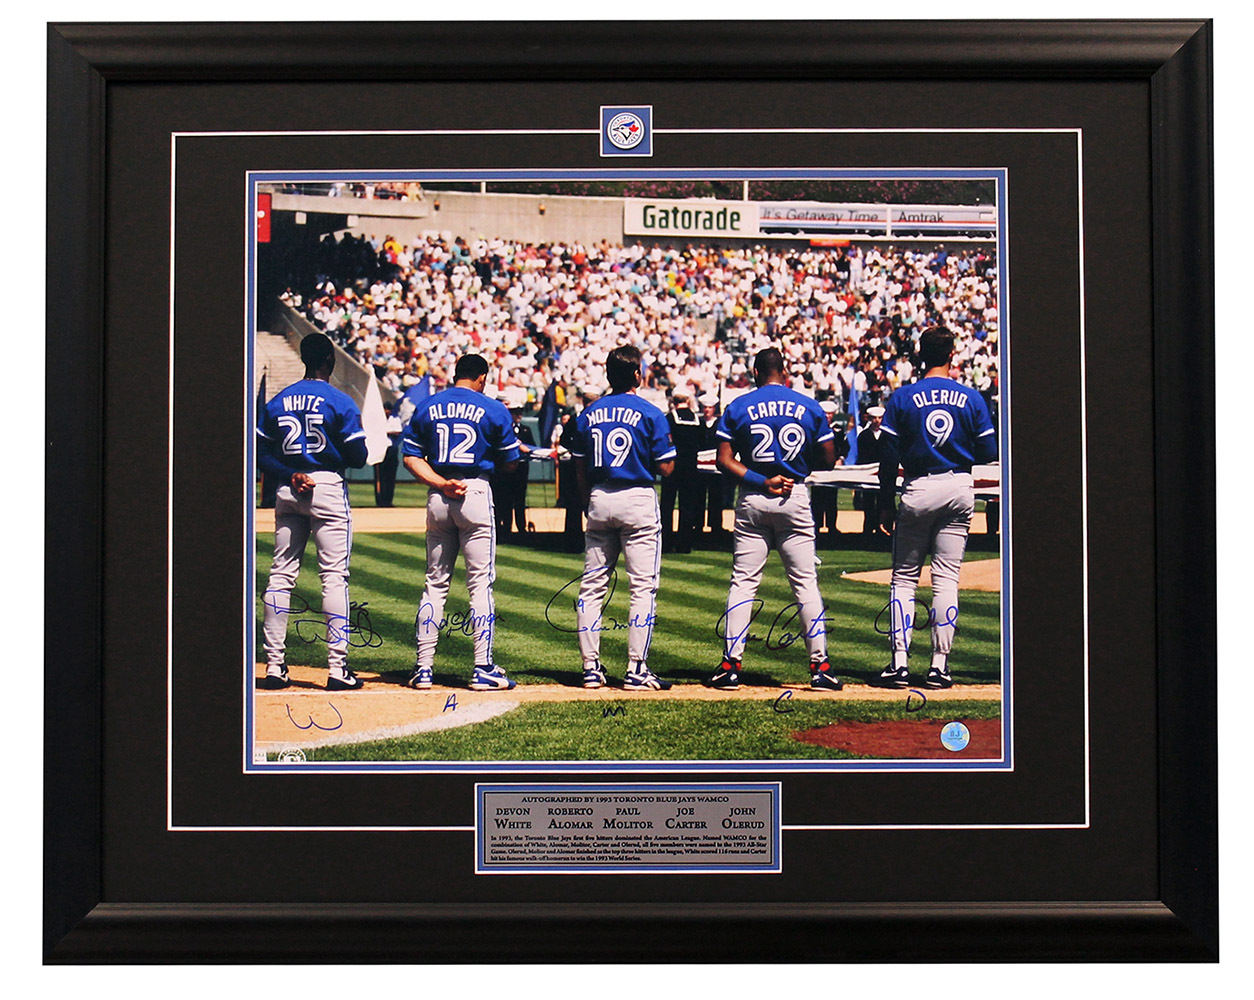 Primary image for 1993 Blue Jays Signed WAMCO White Alomar Molitor Carter Olerud 25x31 Frame